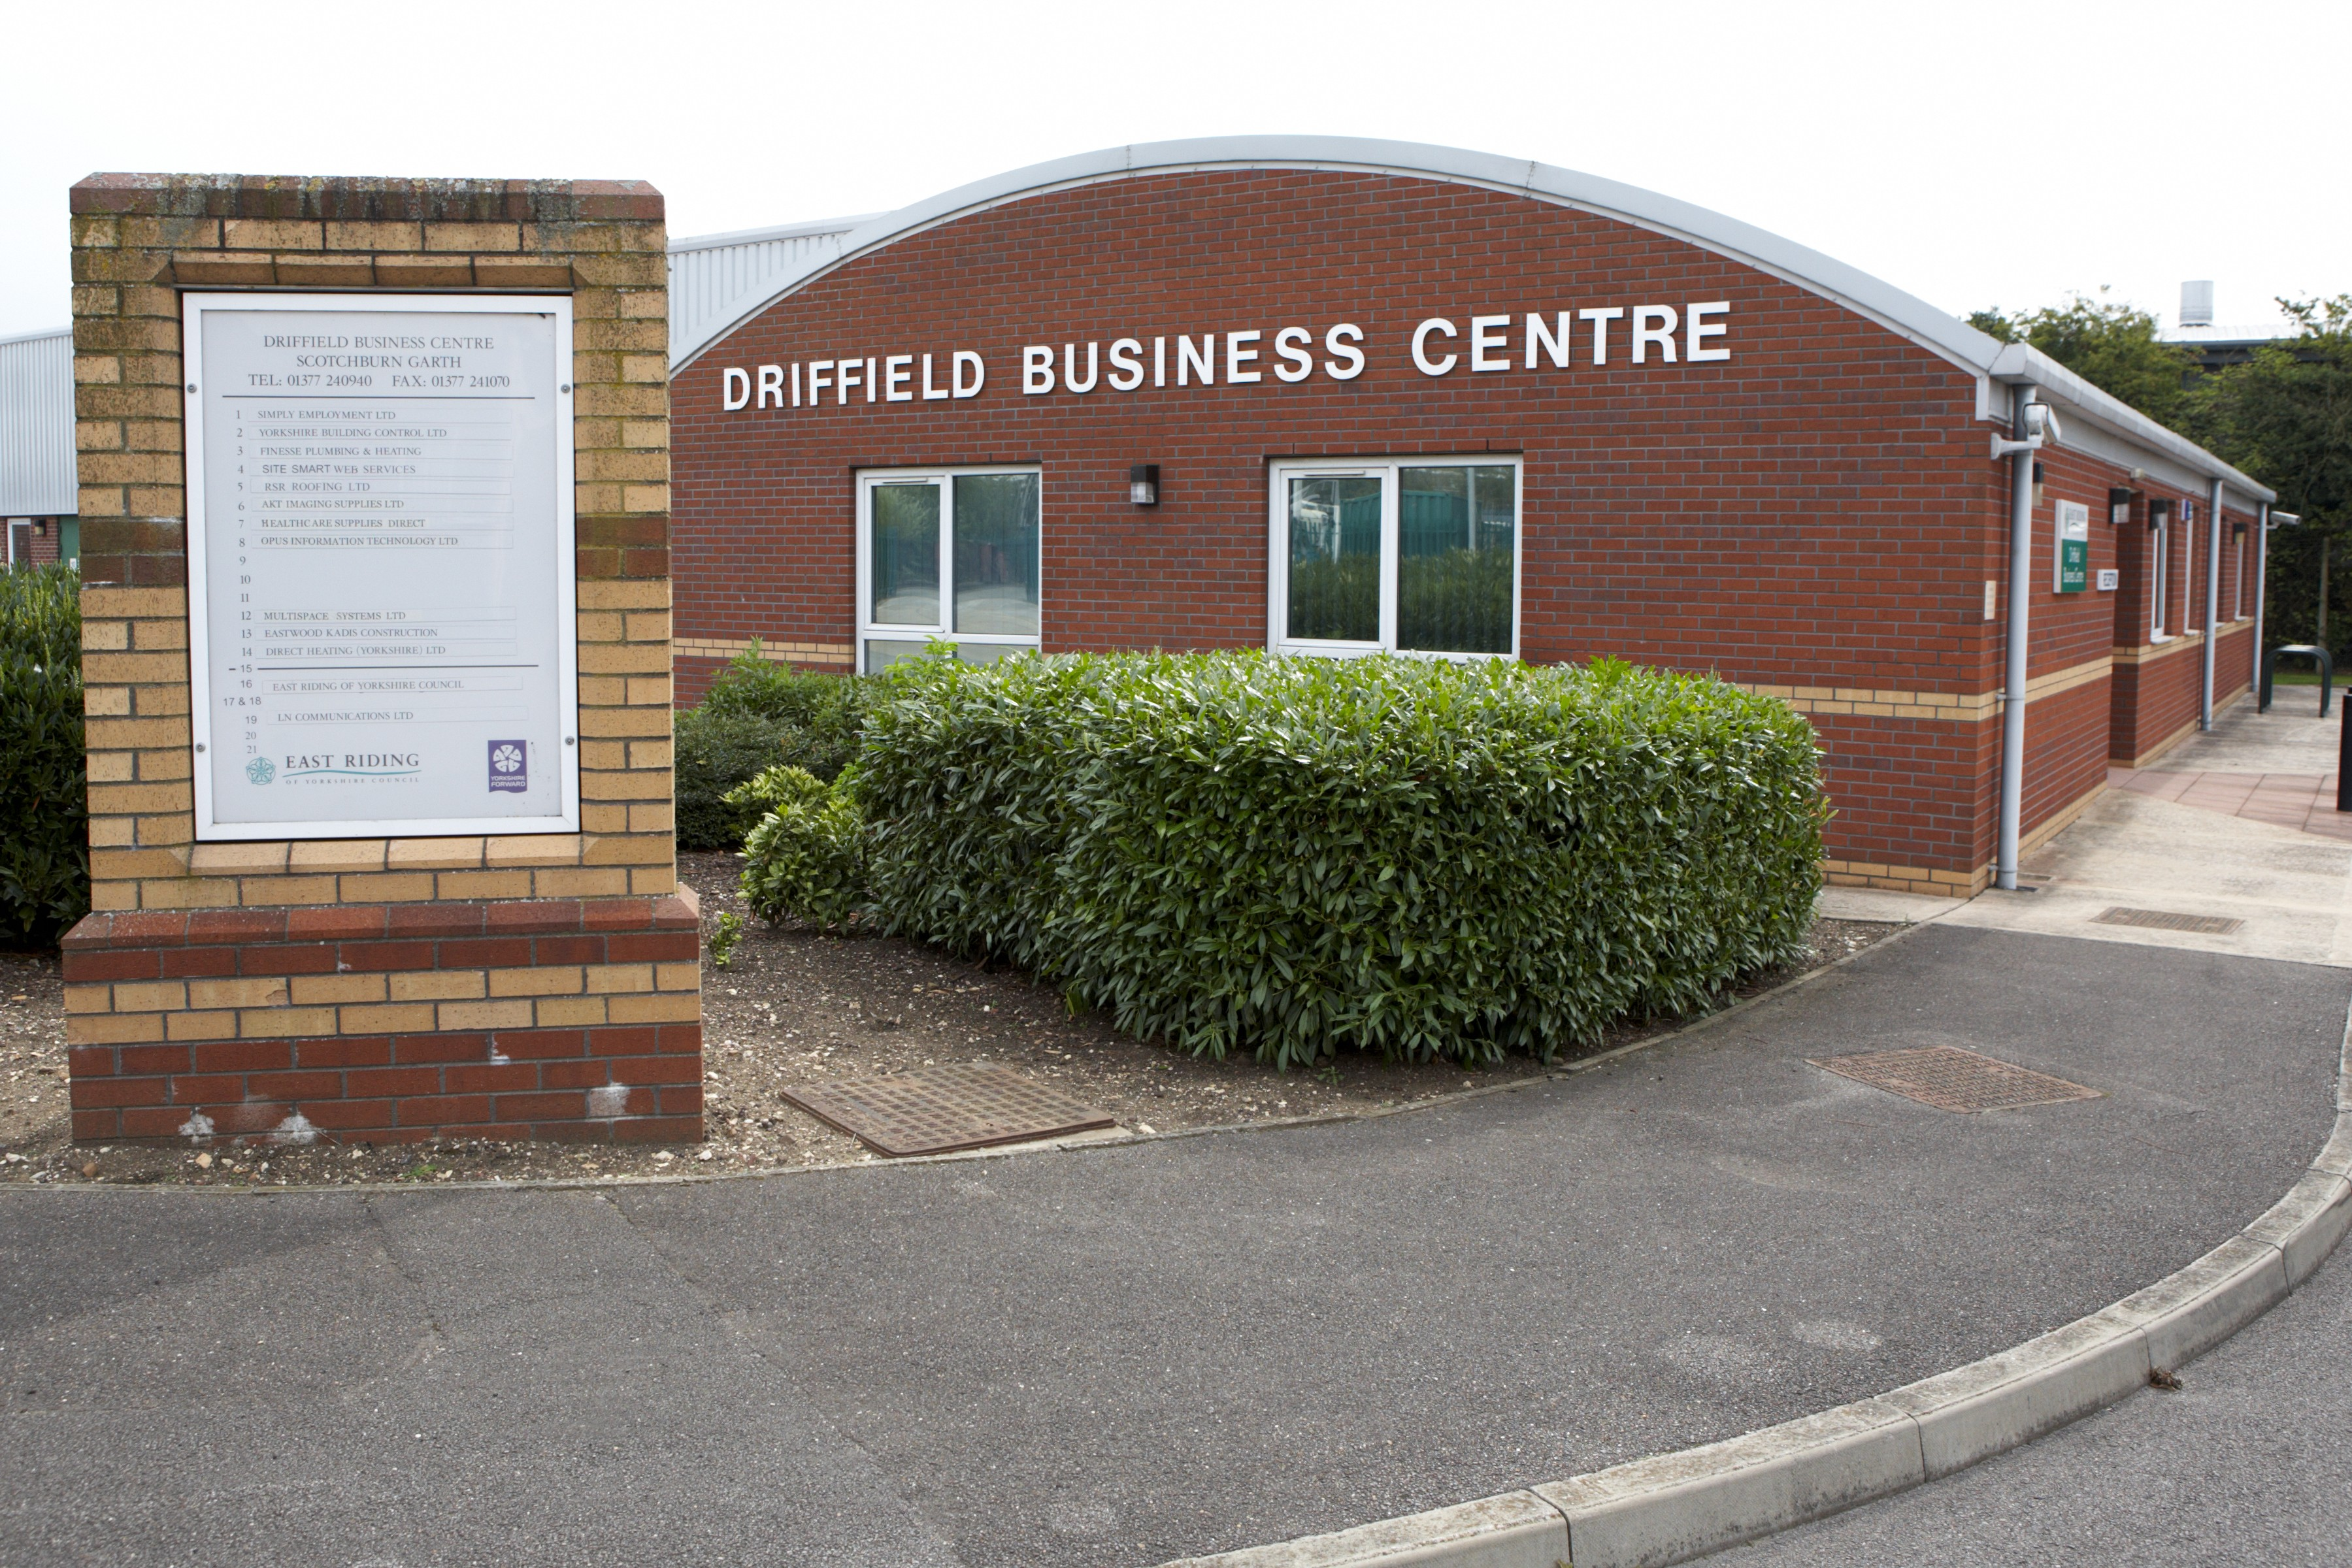 Driffield BC External Image